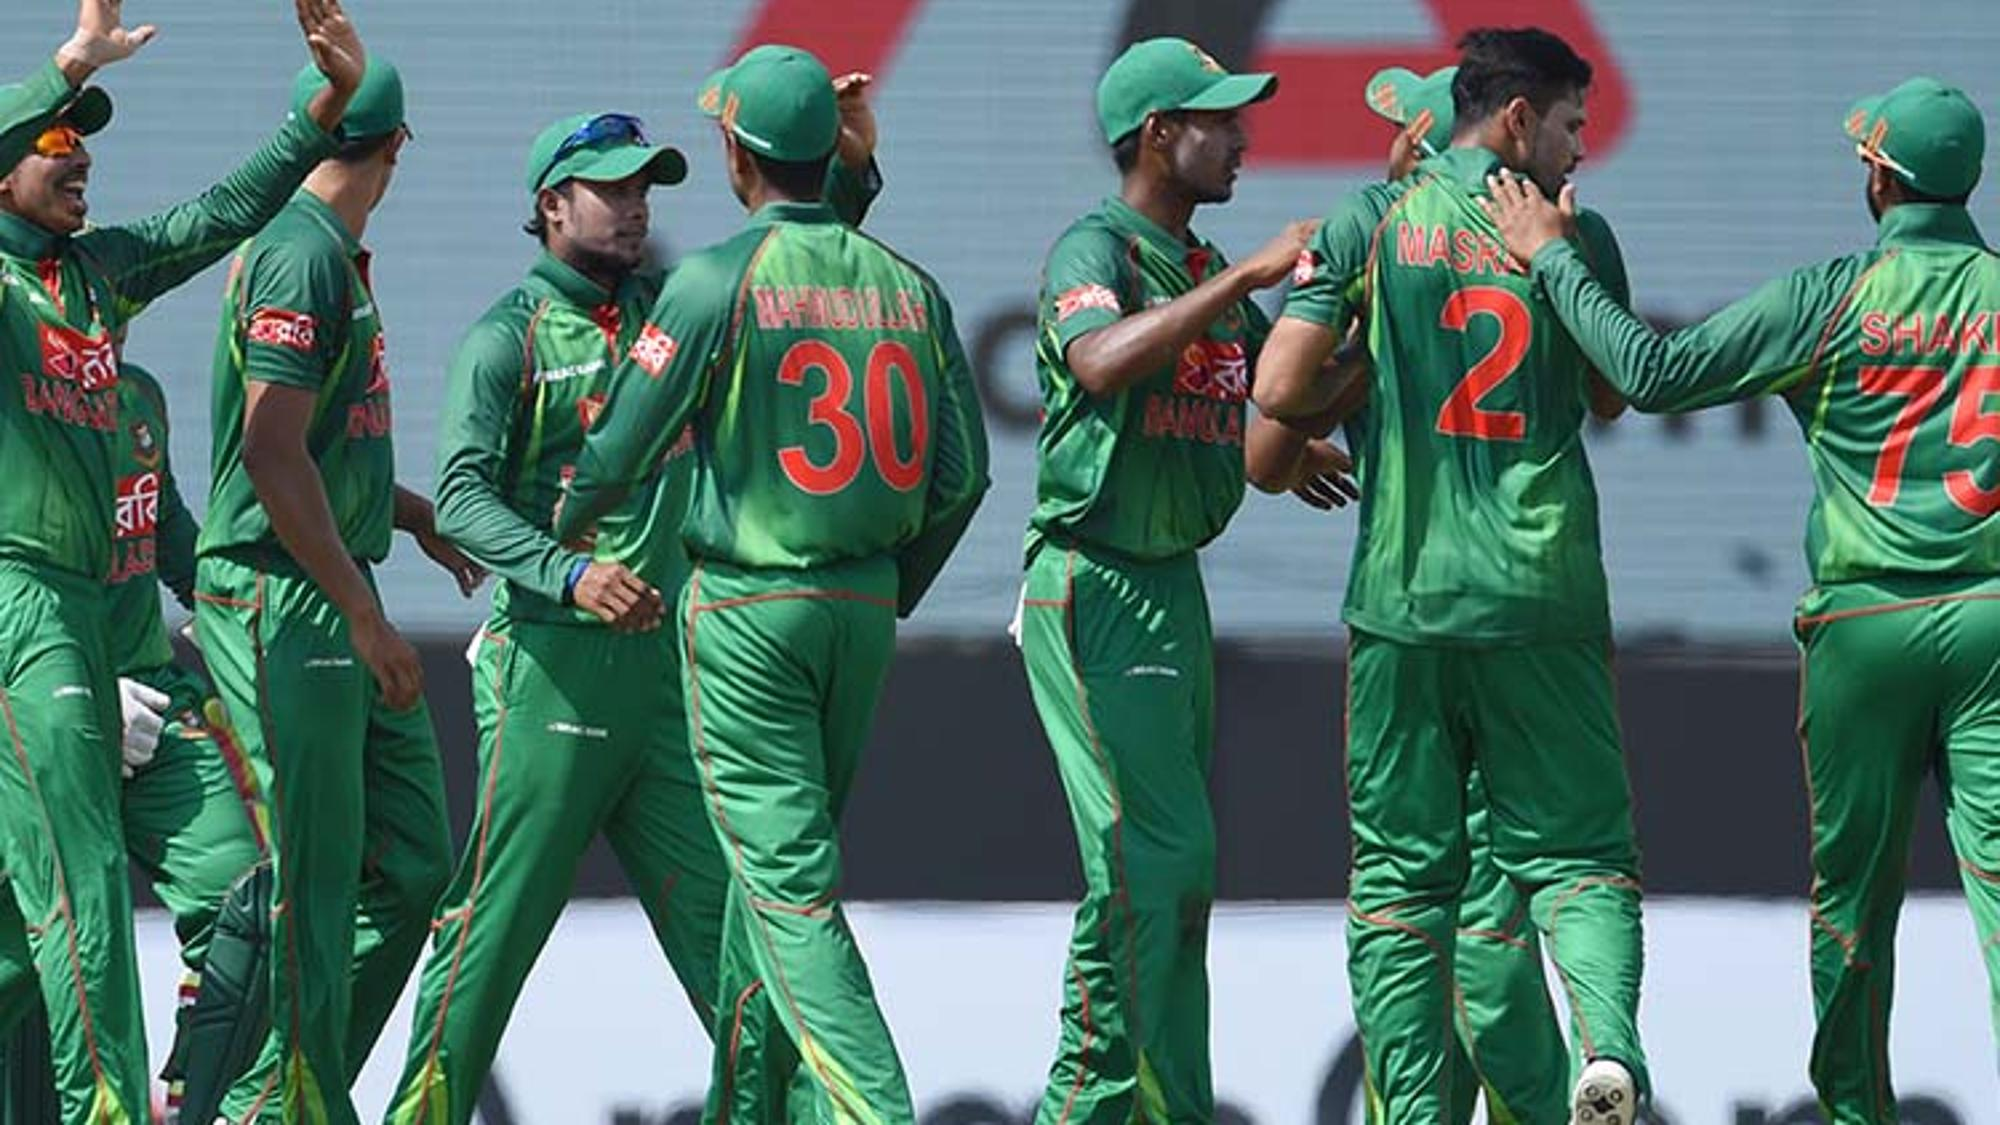 The_Bangladesh_captain_Mashrafe_Mortaza_celebrates_with_his_teammates_after_dismissing_Danushka_Gunathilaka_for_9